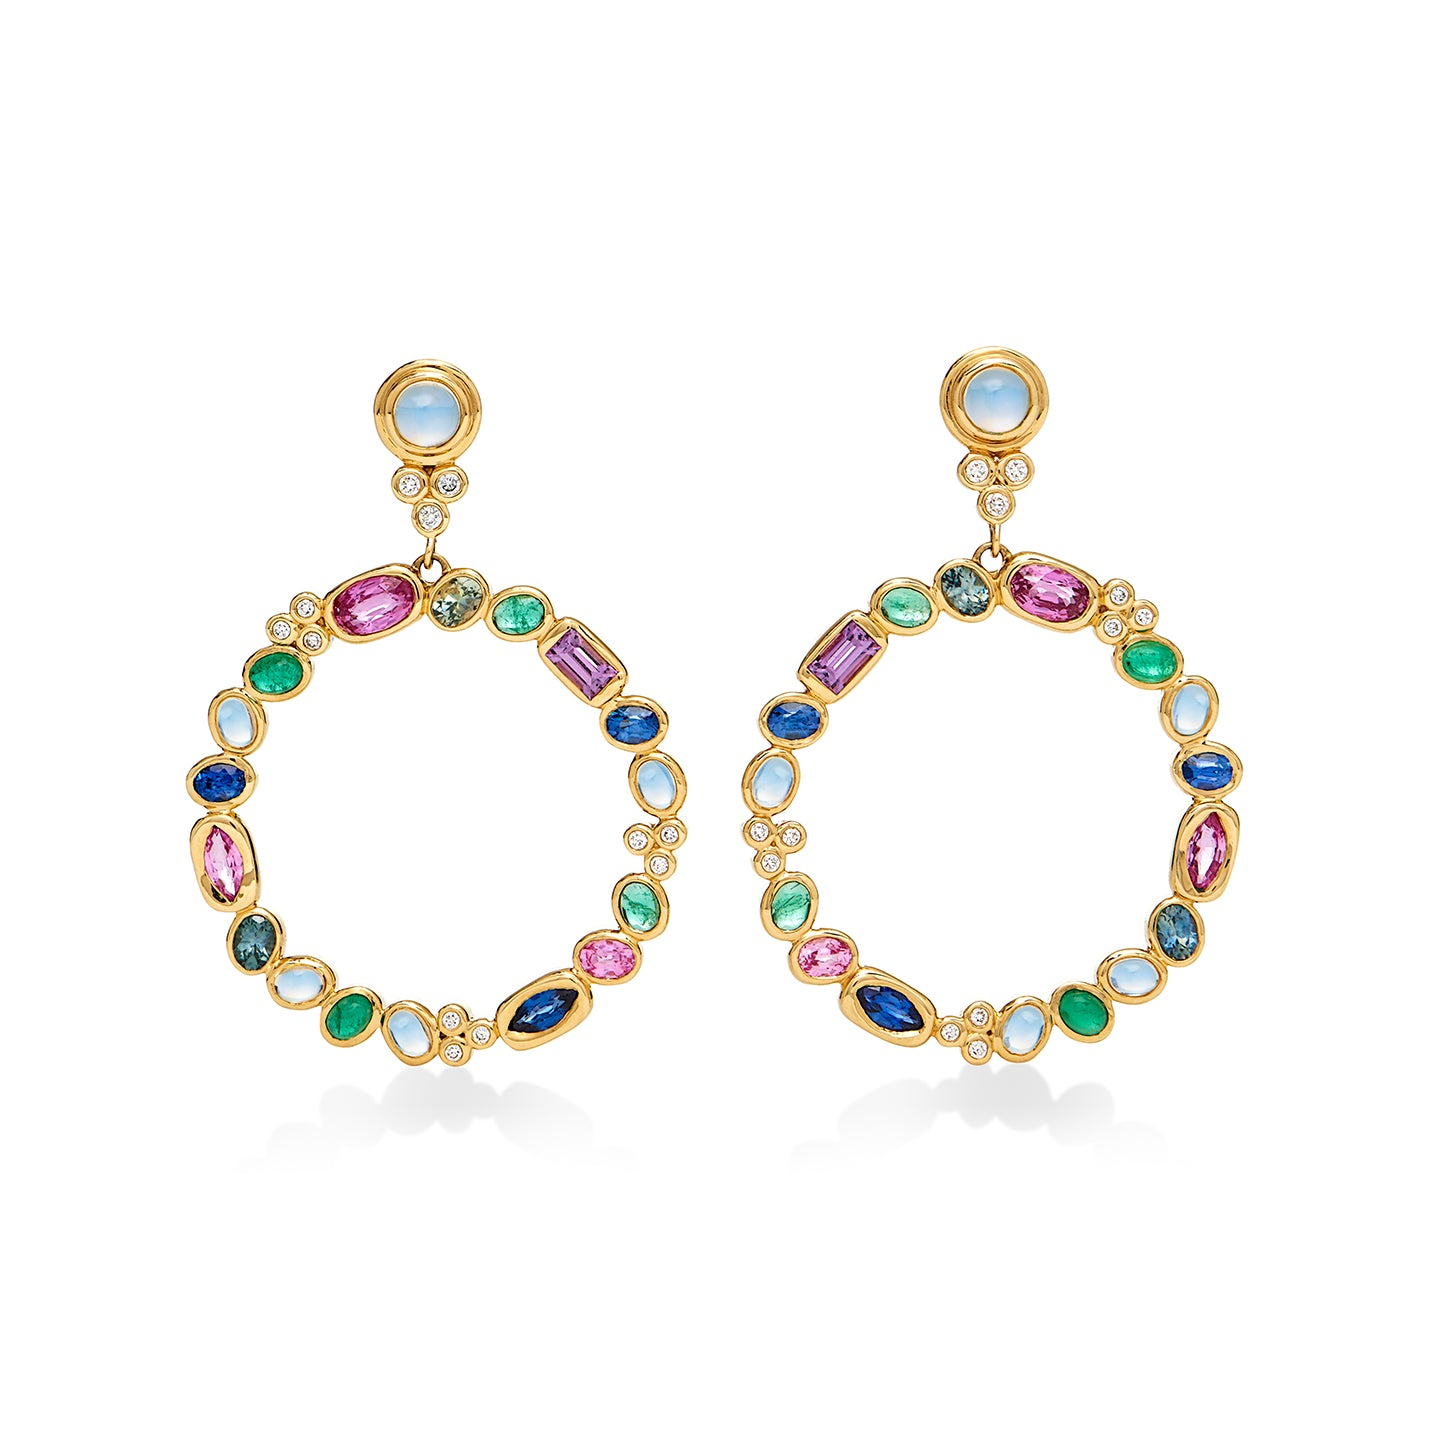 18K Campo Circle Earrings